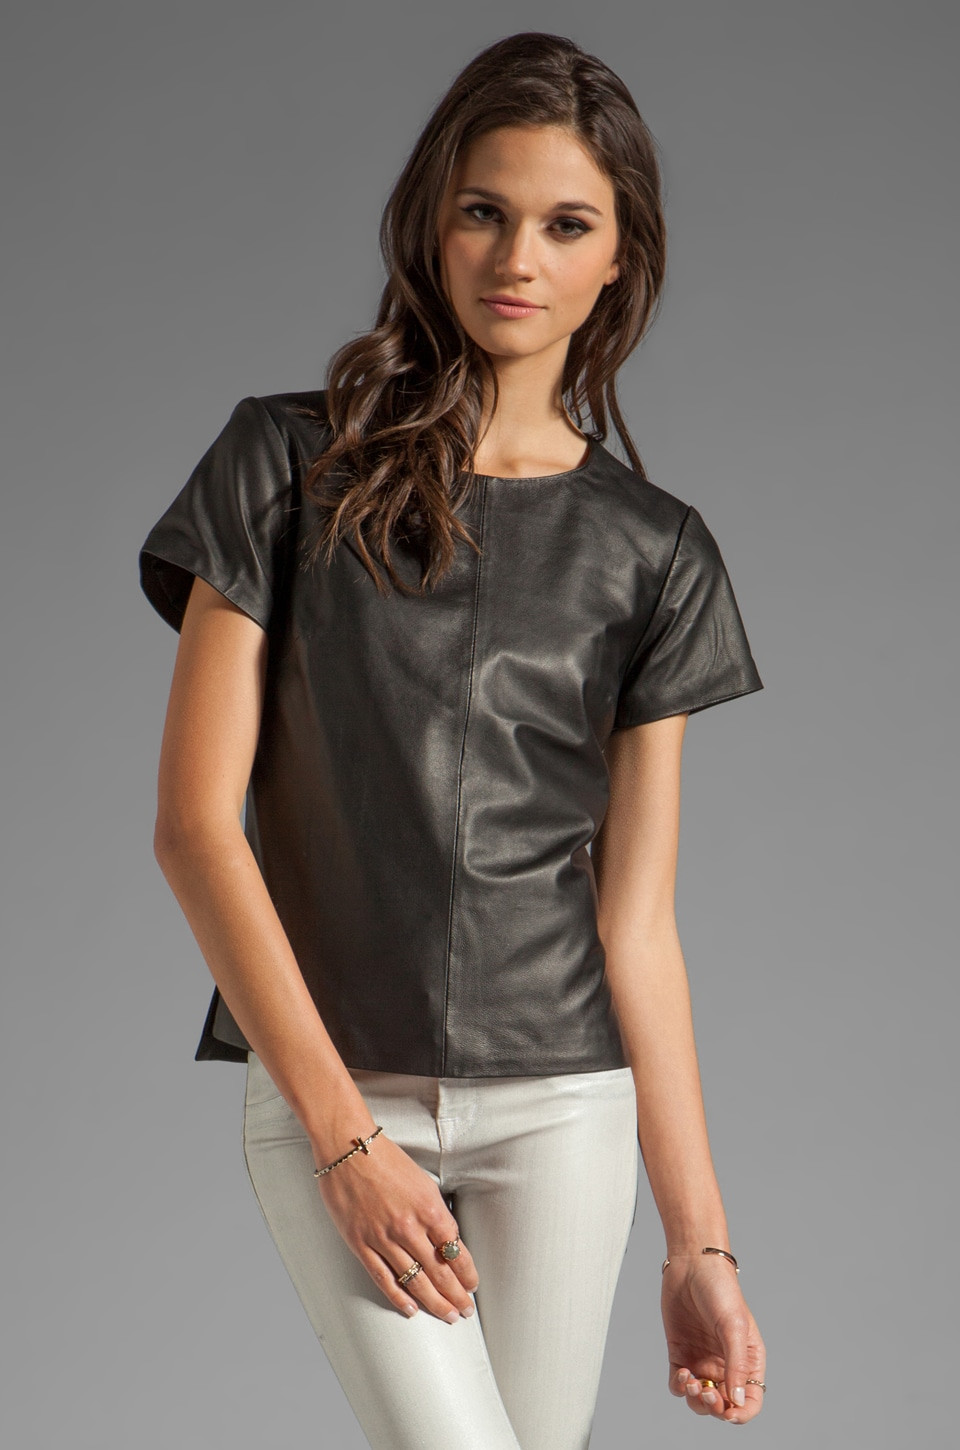 Trina Turk Drapey Leather Short Sleeve Top in Black